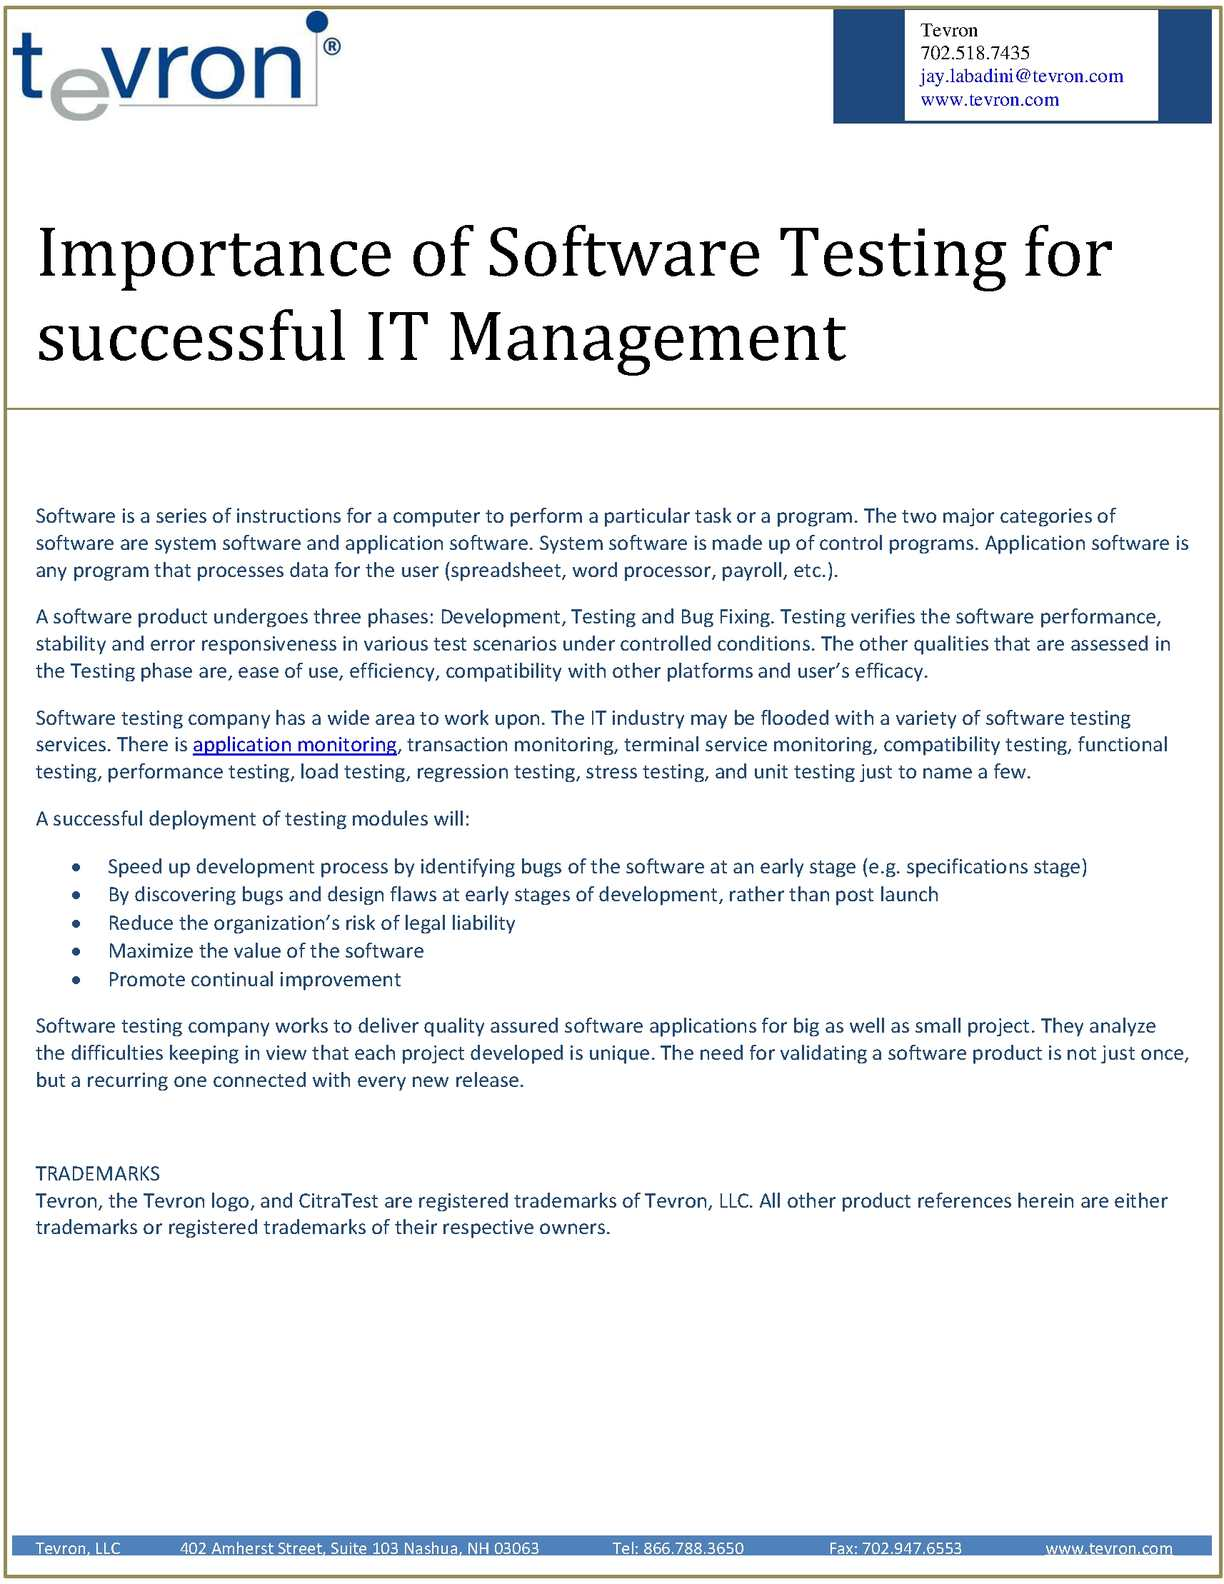 Calameo Importance Of Software Testing For Successful It Management